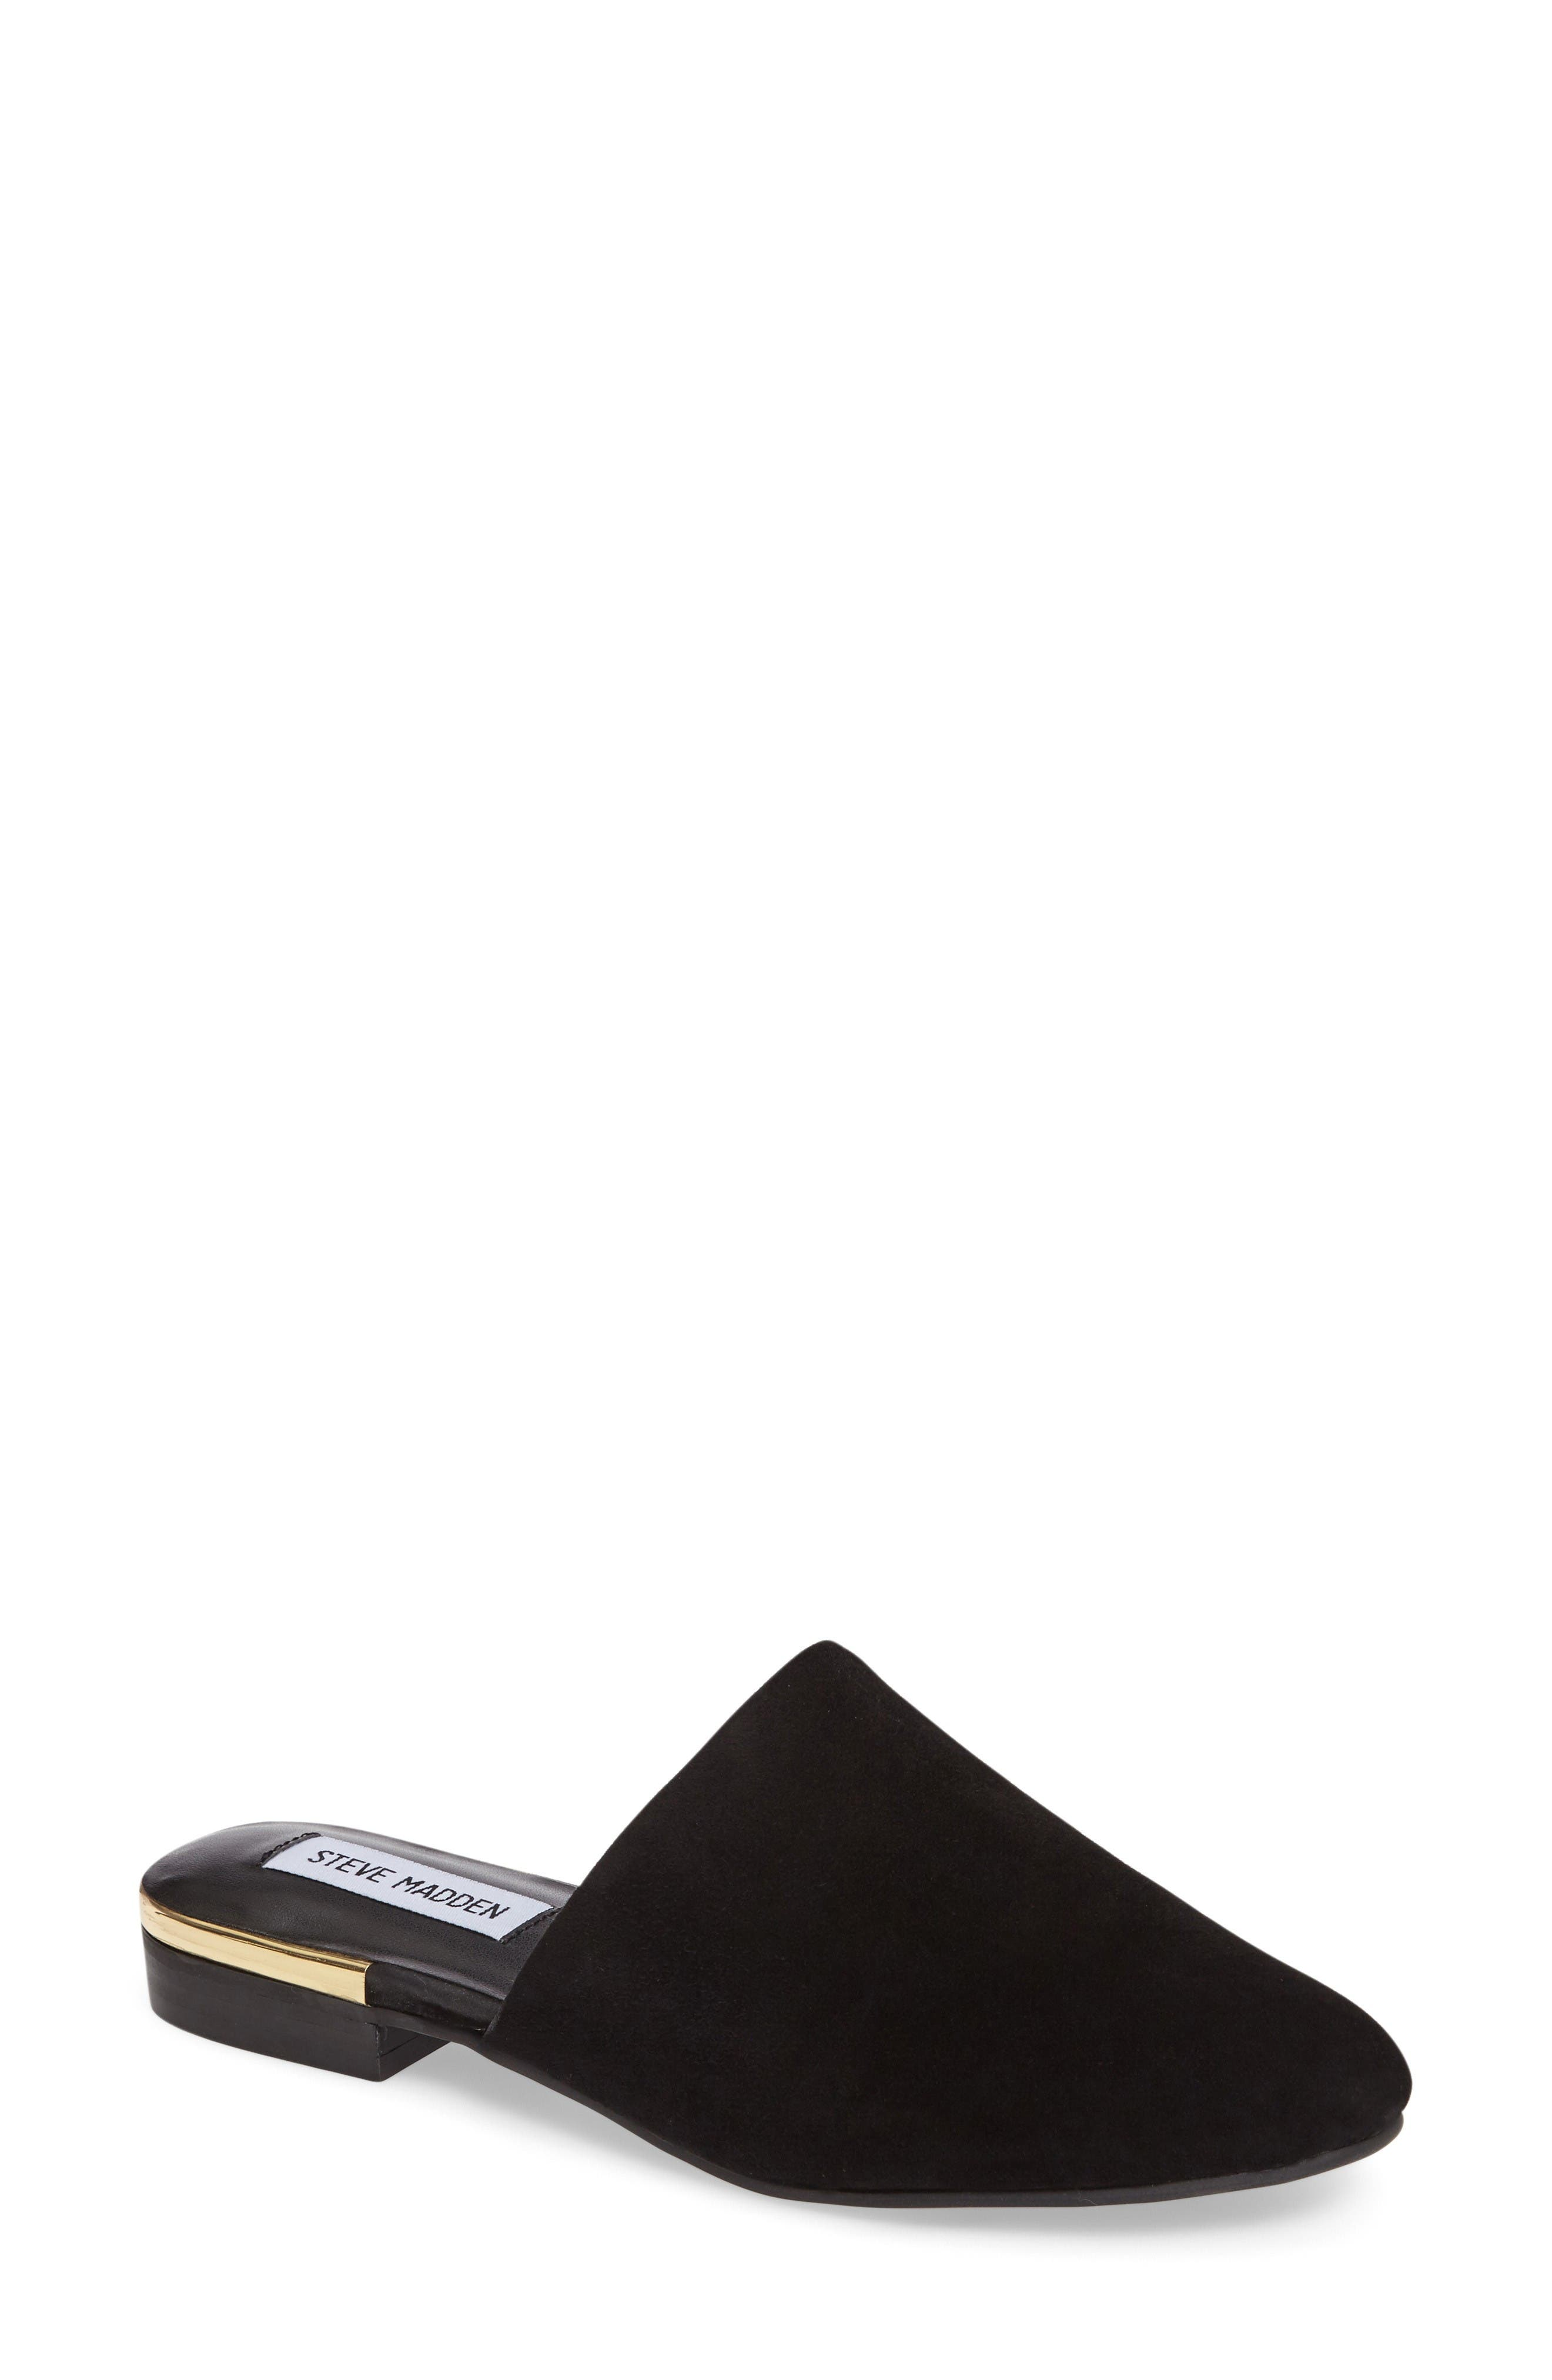 Snapp Mule,                         Main,                         color, Black Suede